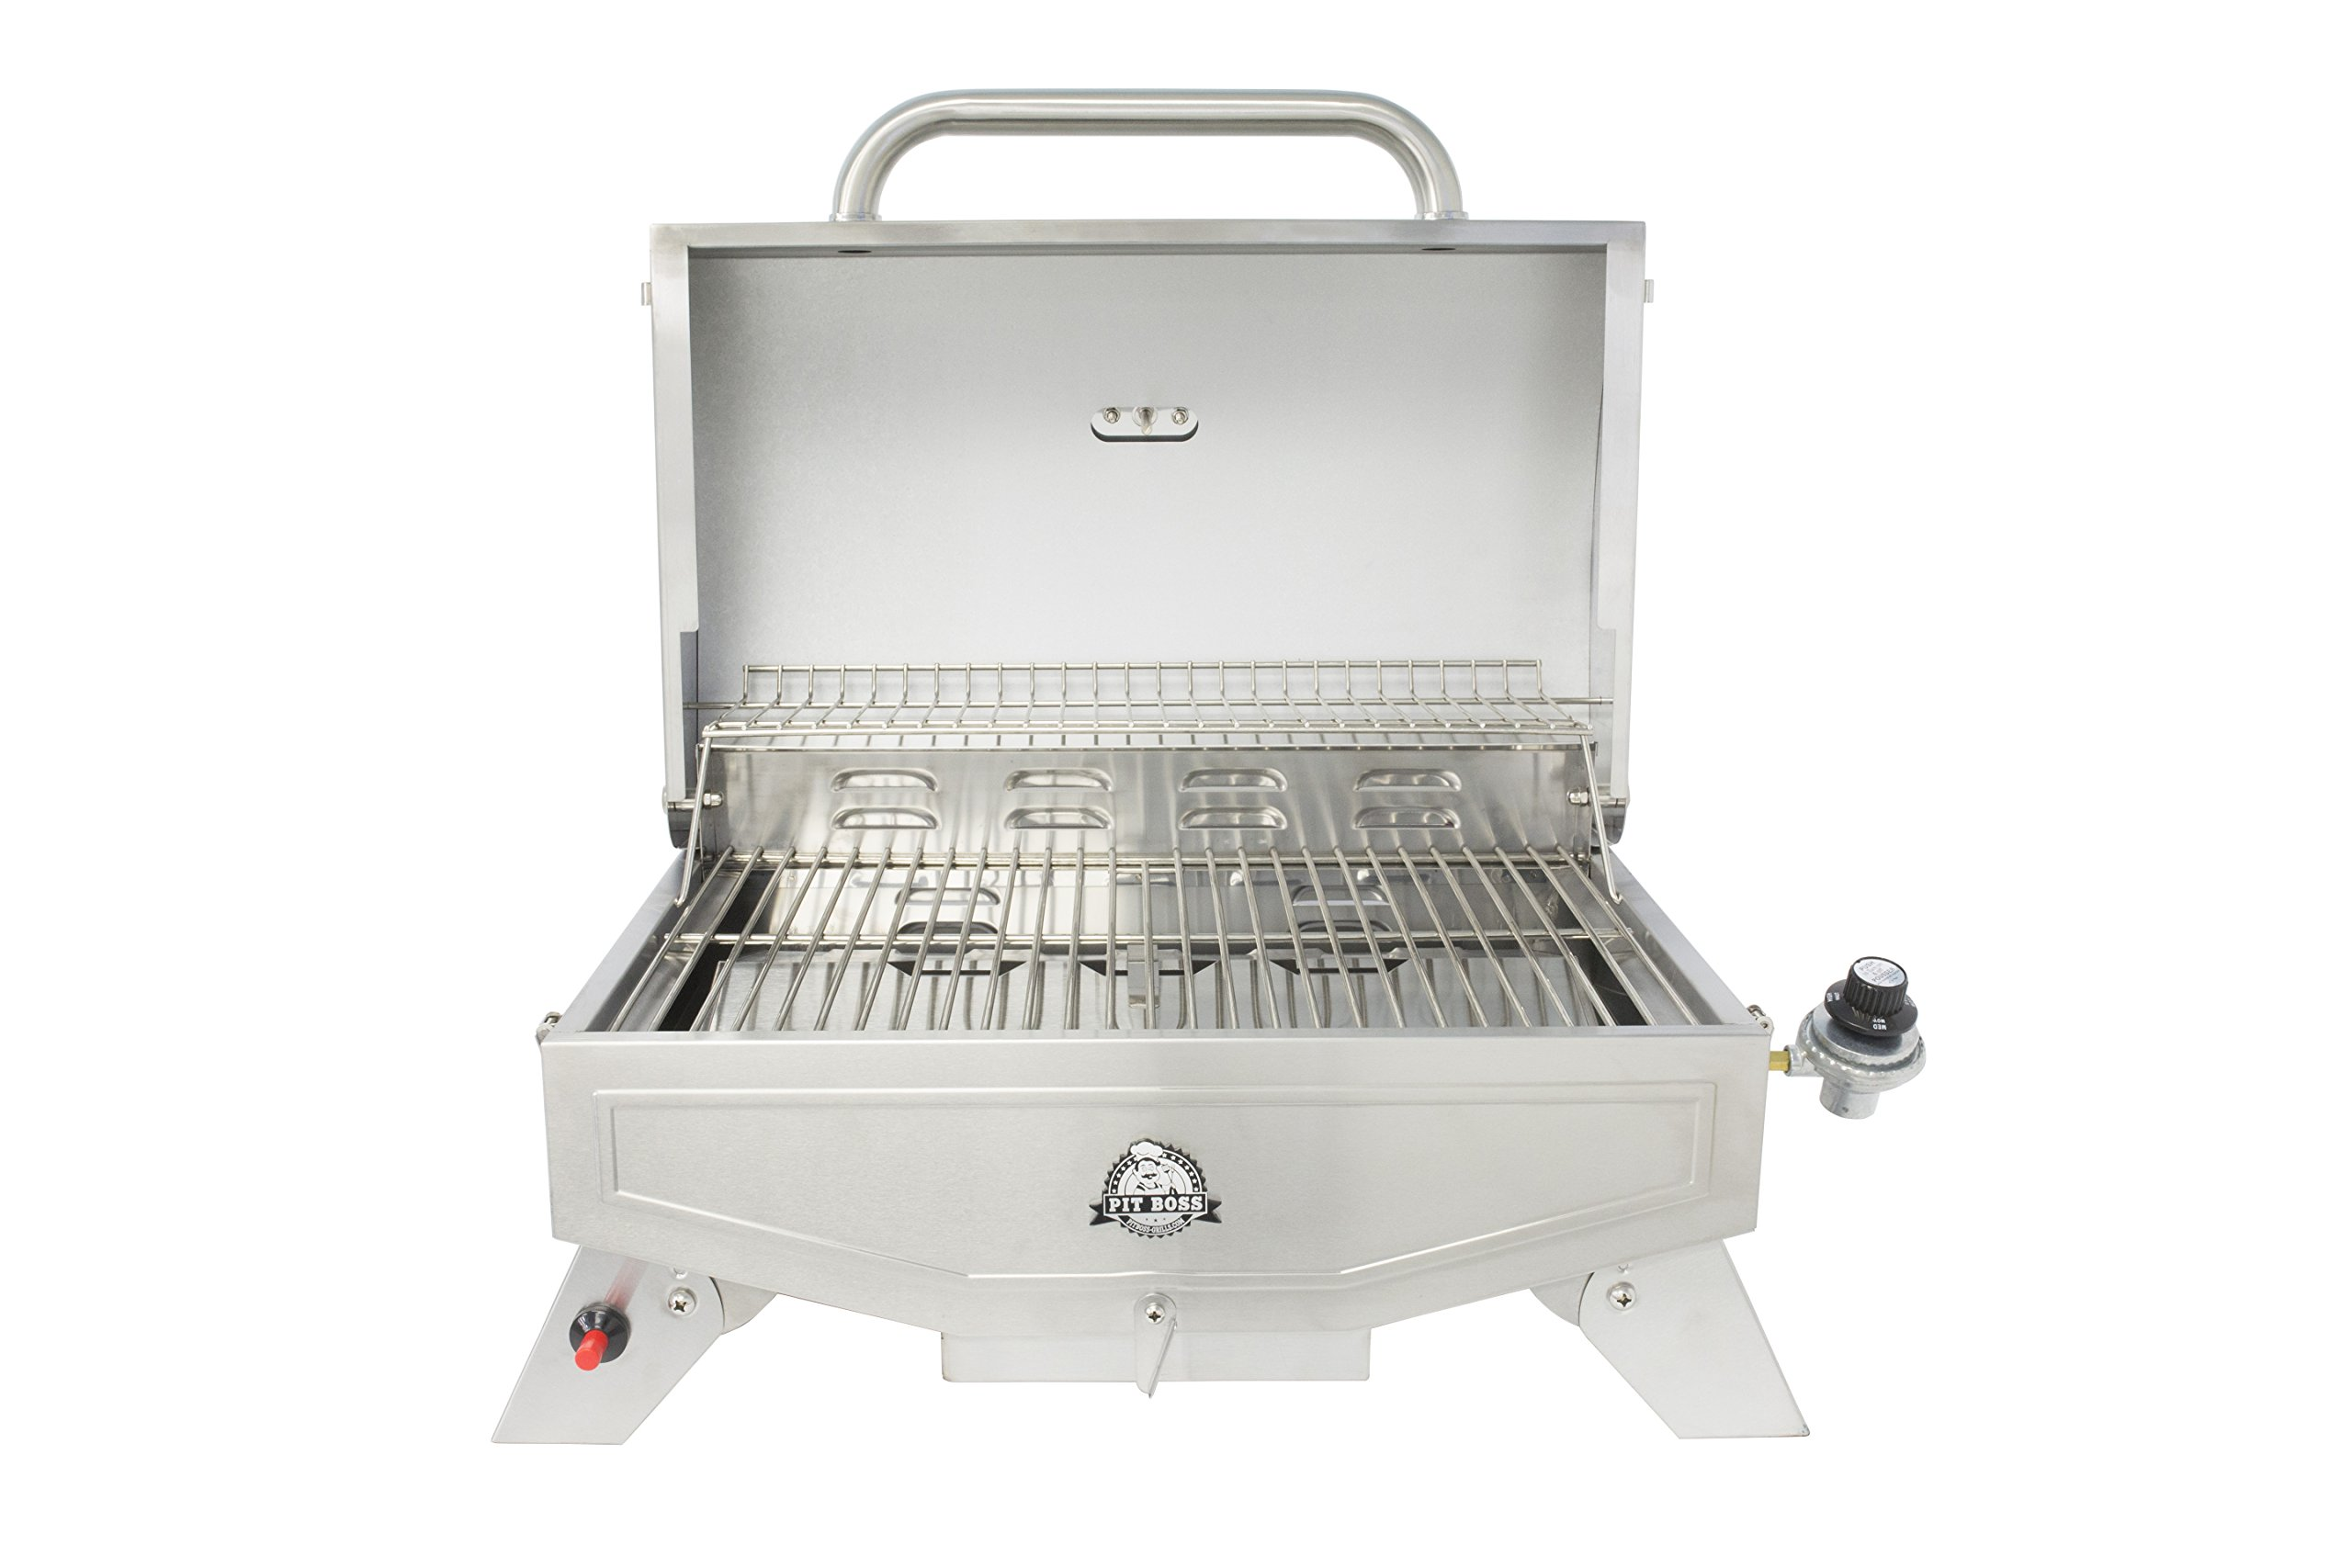 Pit Boss Grills PB100P1 Pit Stop Single-Burner Portable Tabletop Grill by Pit Boss Grills (Image #2)